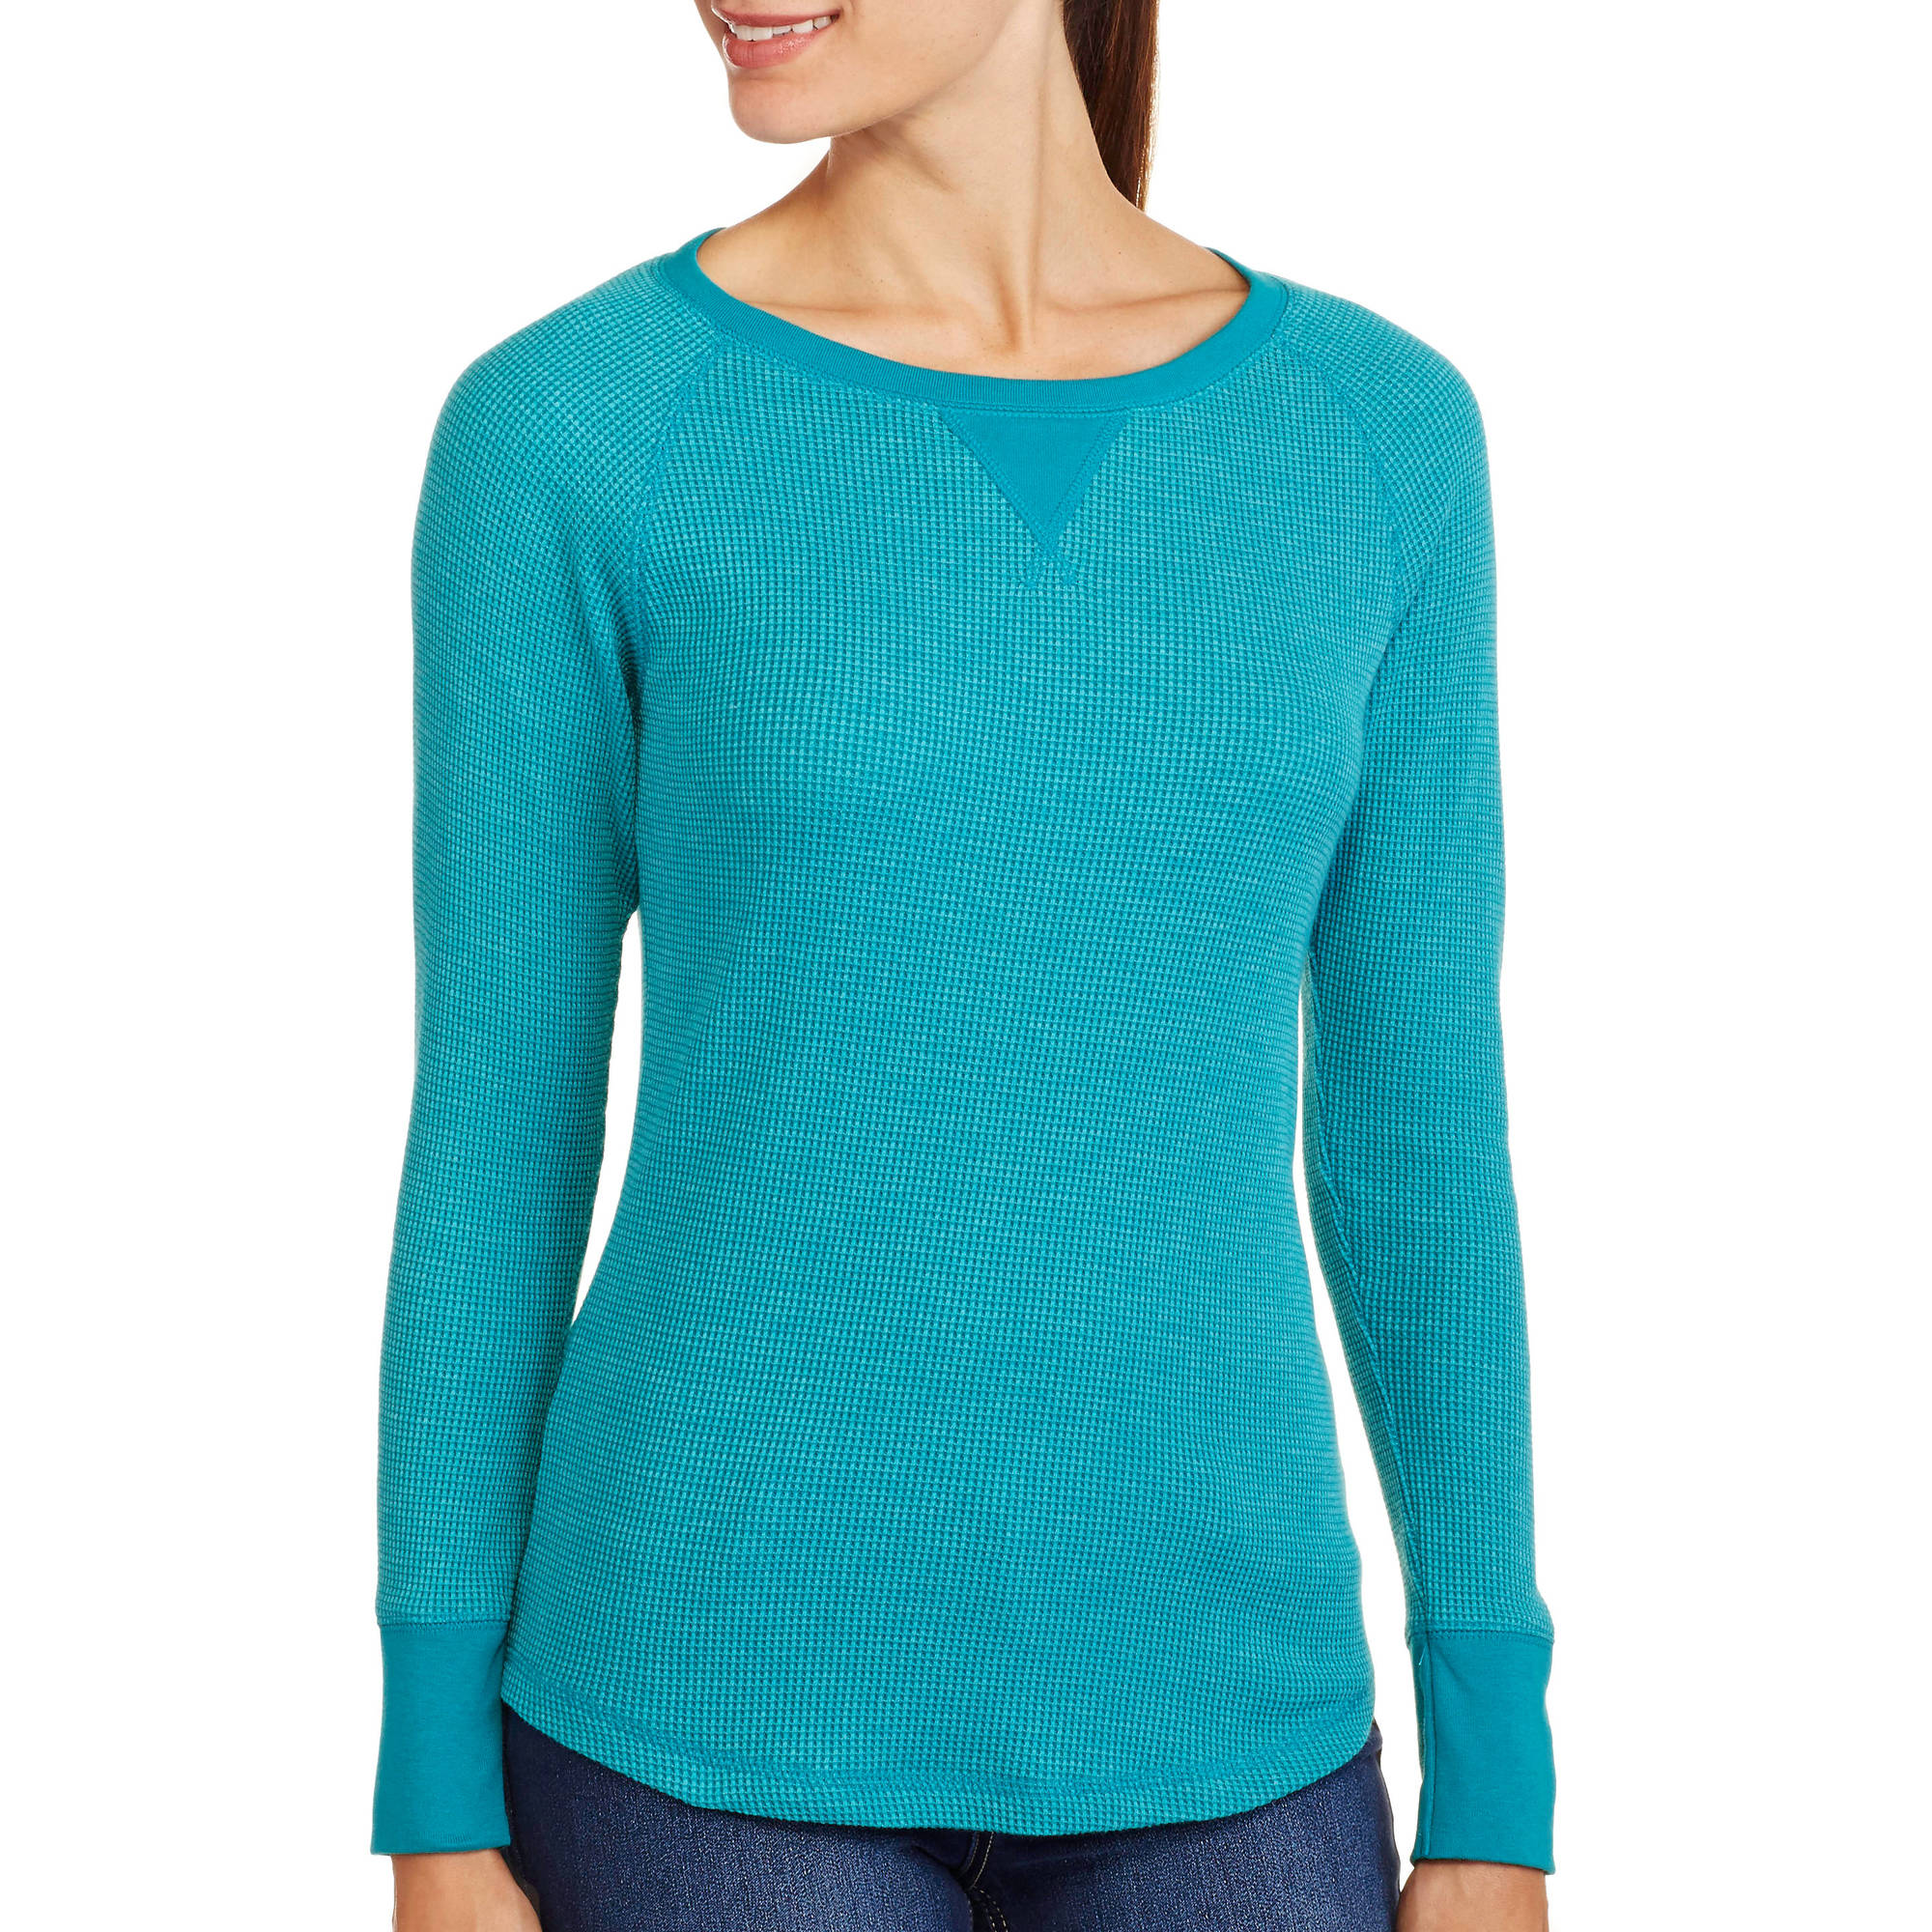 Faded Glory Women's Long Sleeve Raglan Thermal